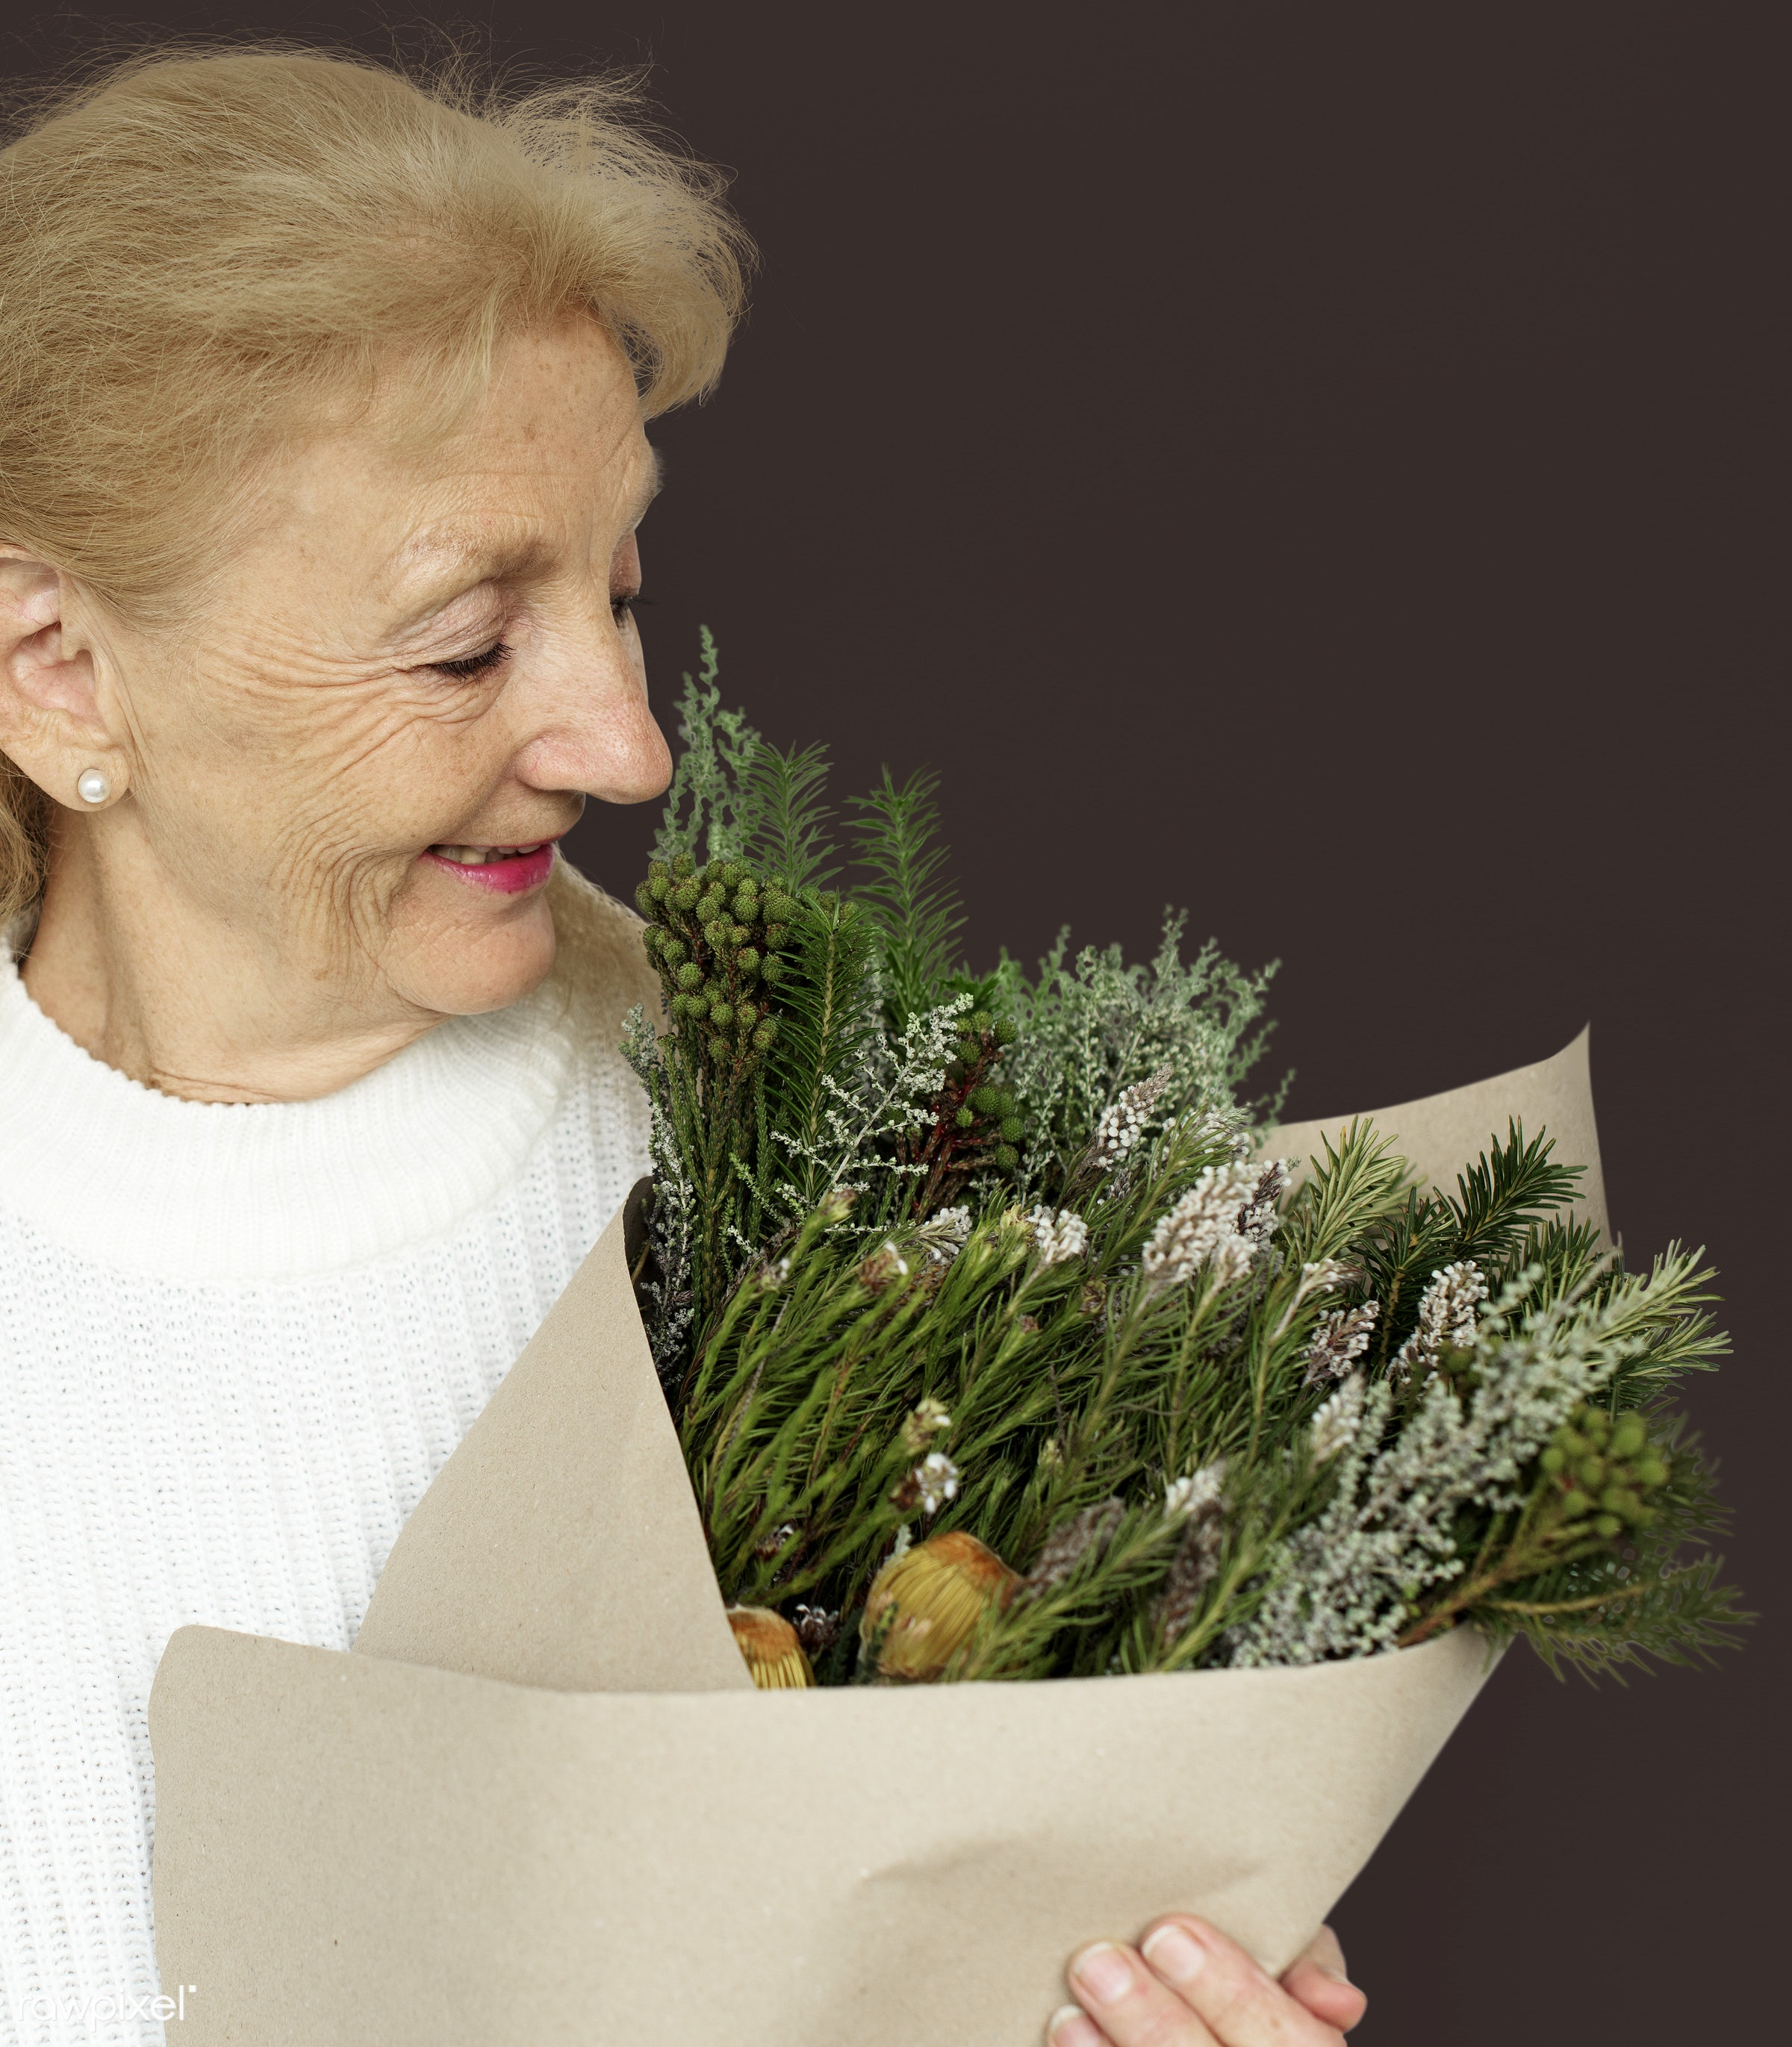 studio, expression, bouquet, person, people, woman, smile, cheerful, smiling, flower, isolated, happiness, portrait, emotion...